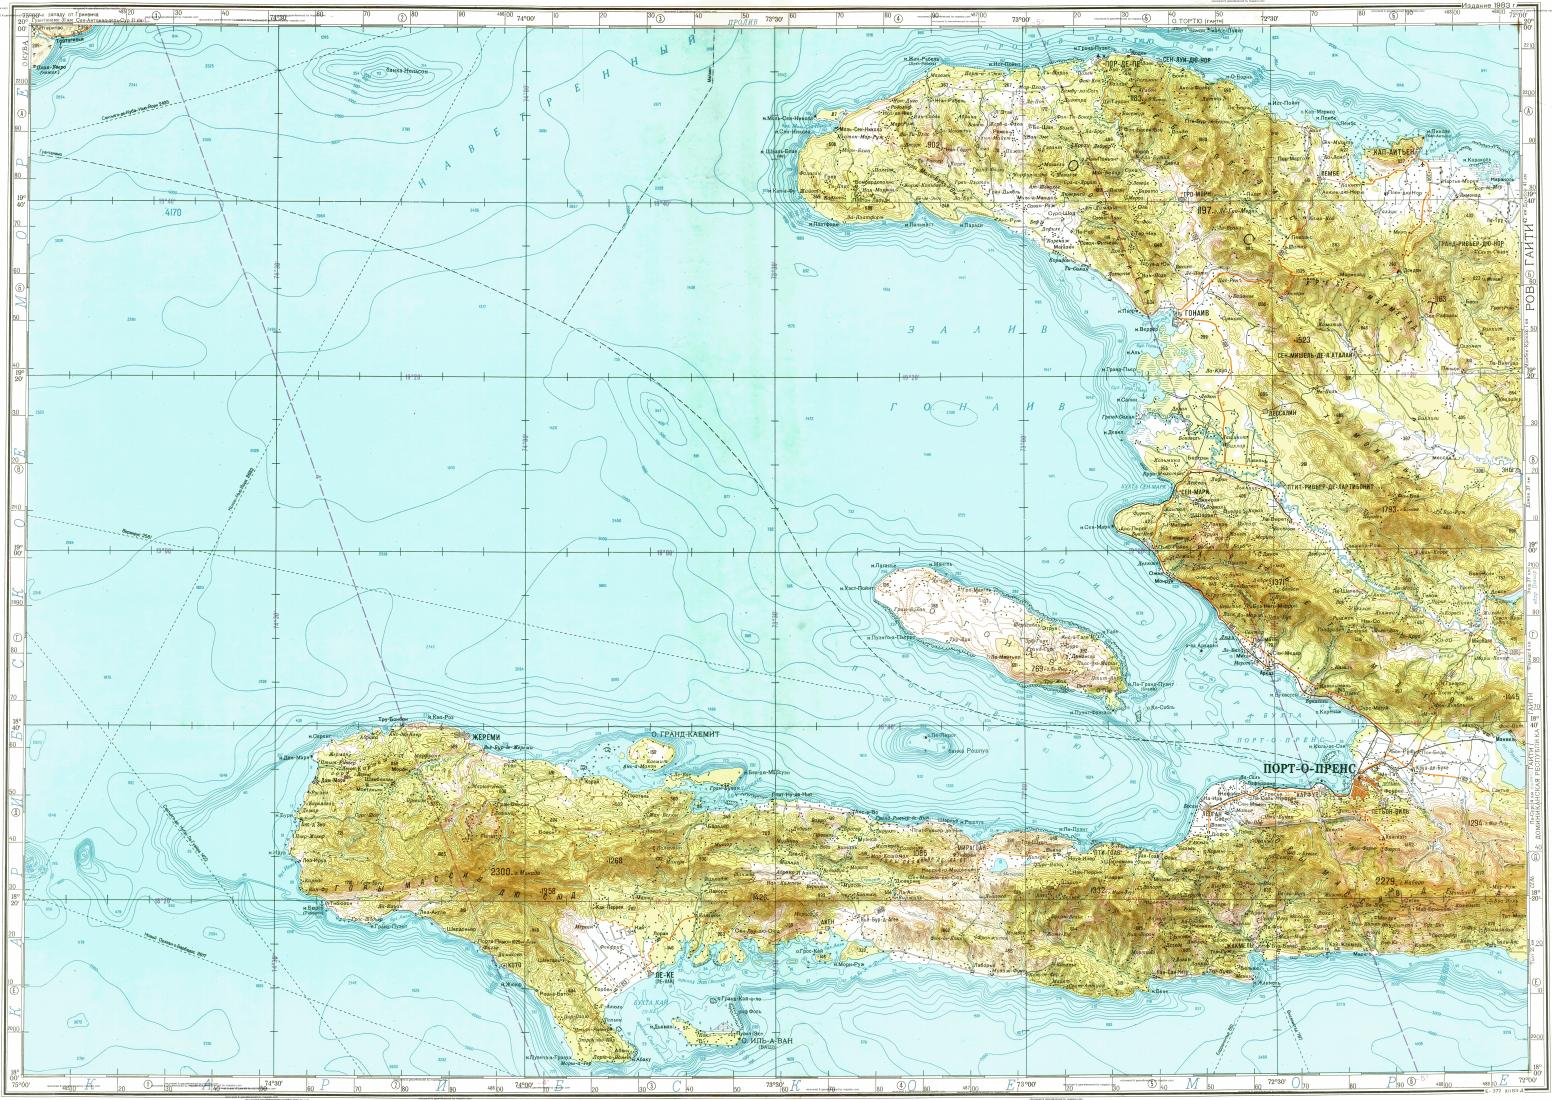 Download topographic map in area of Portauprince Caphaitien Les